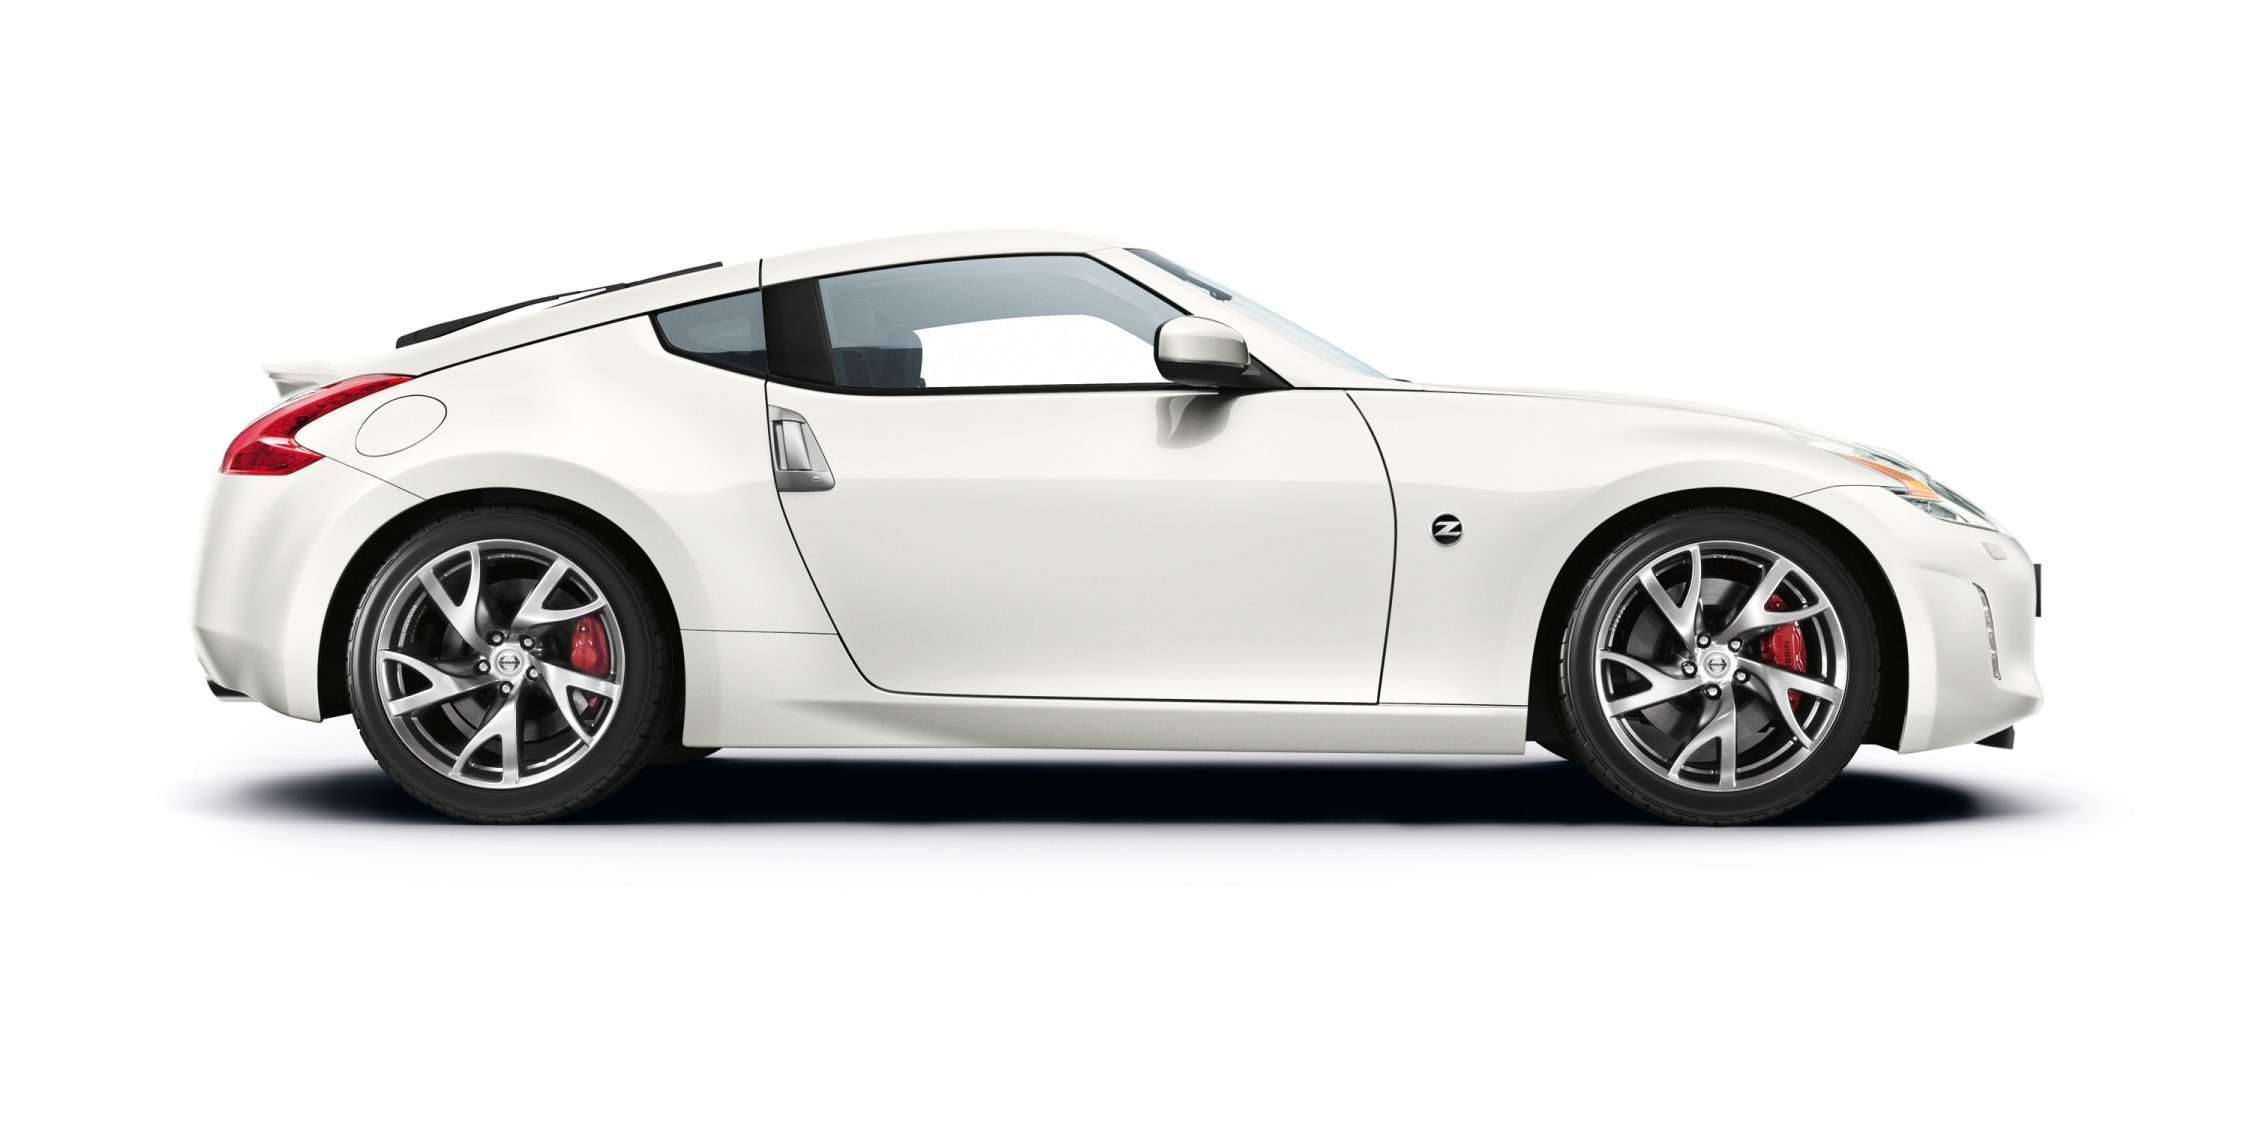 Nissan 370Z coupé - Pearl White - Vista lateral frontal